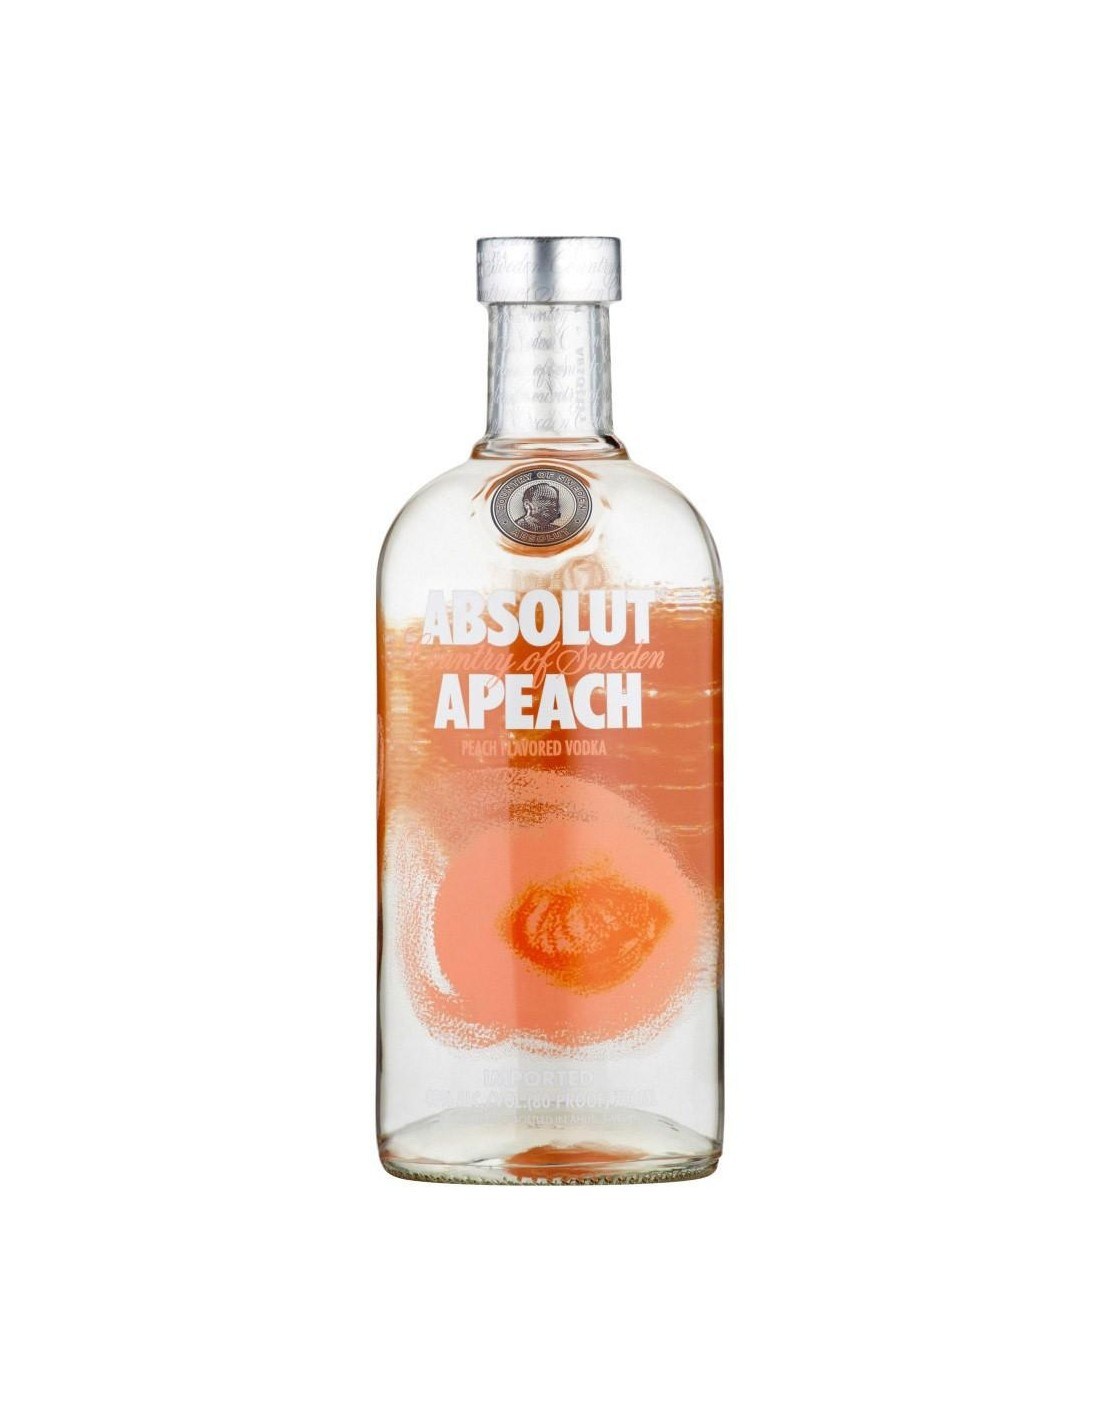 Vodca Absolut Peach 40% alc., 0.7L, Suedia